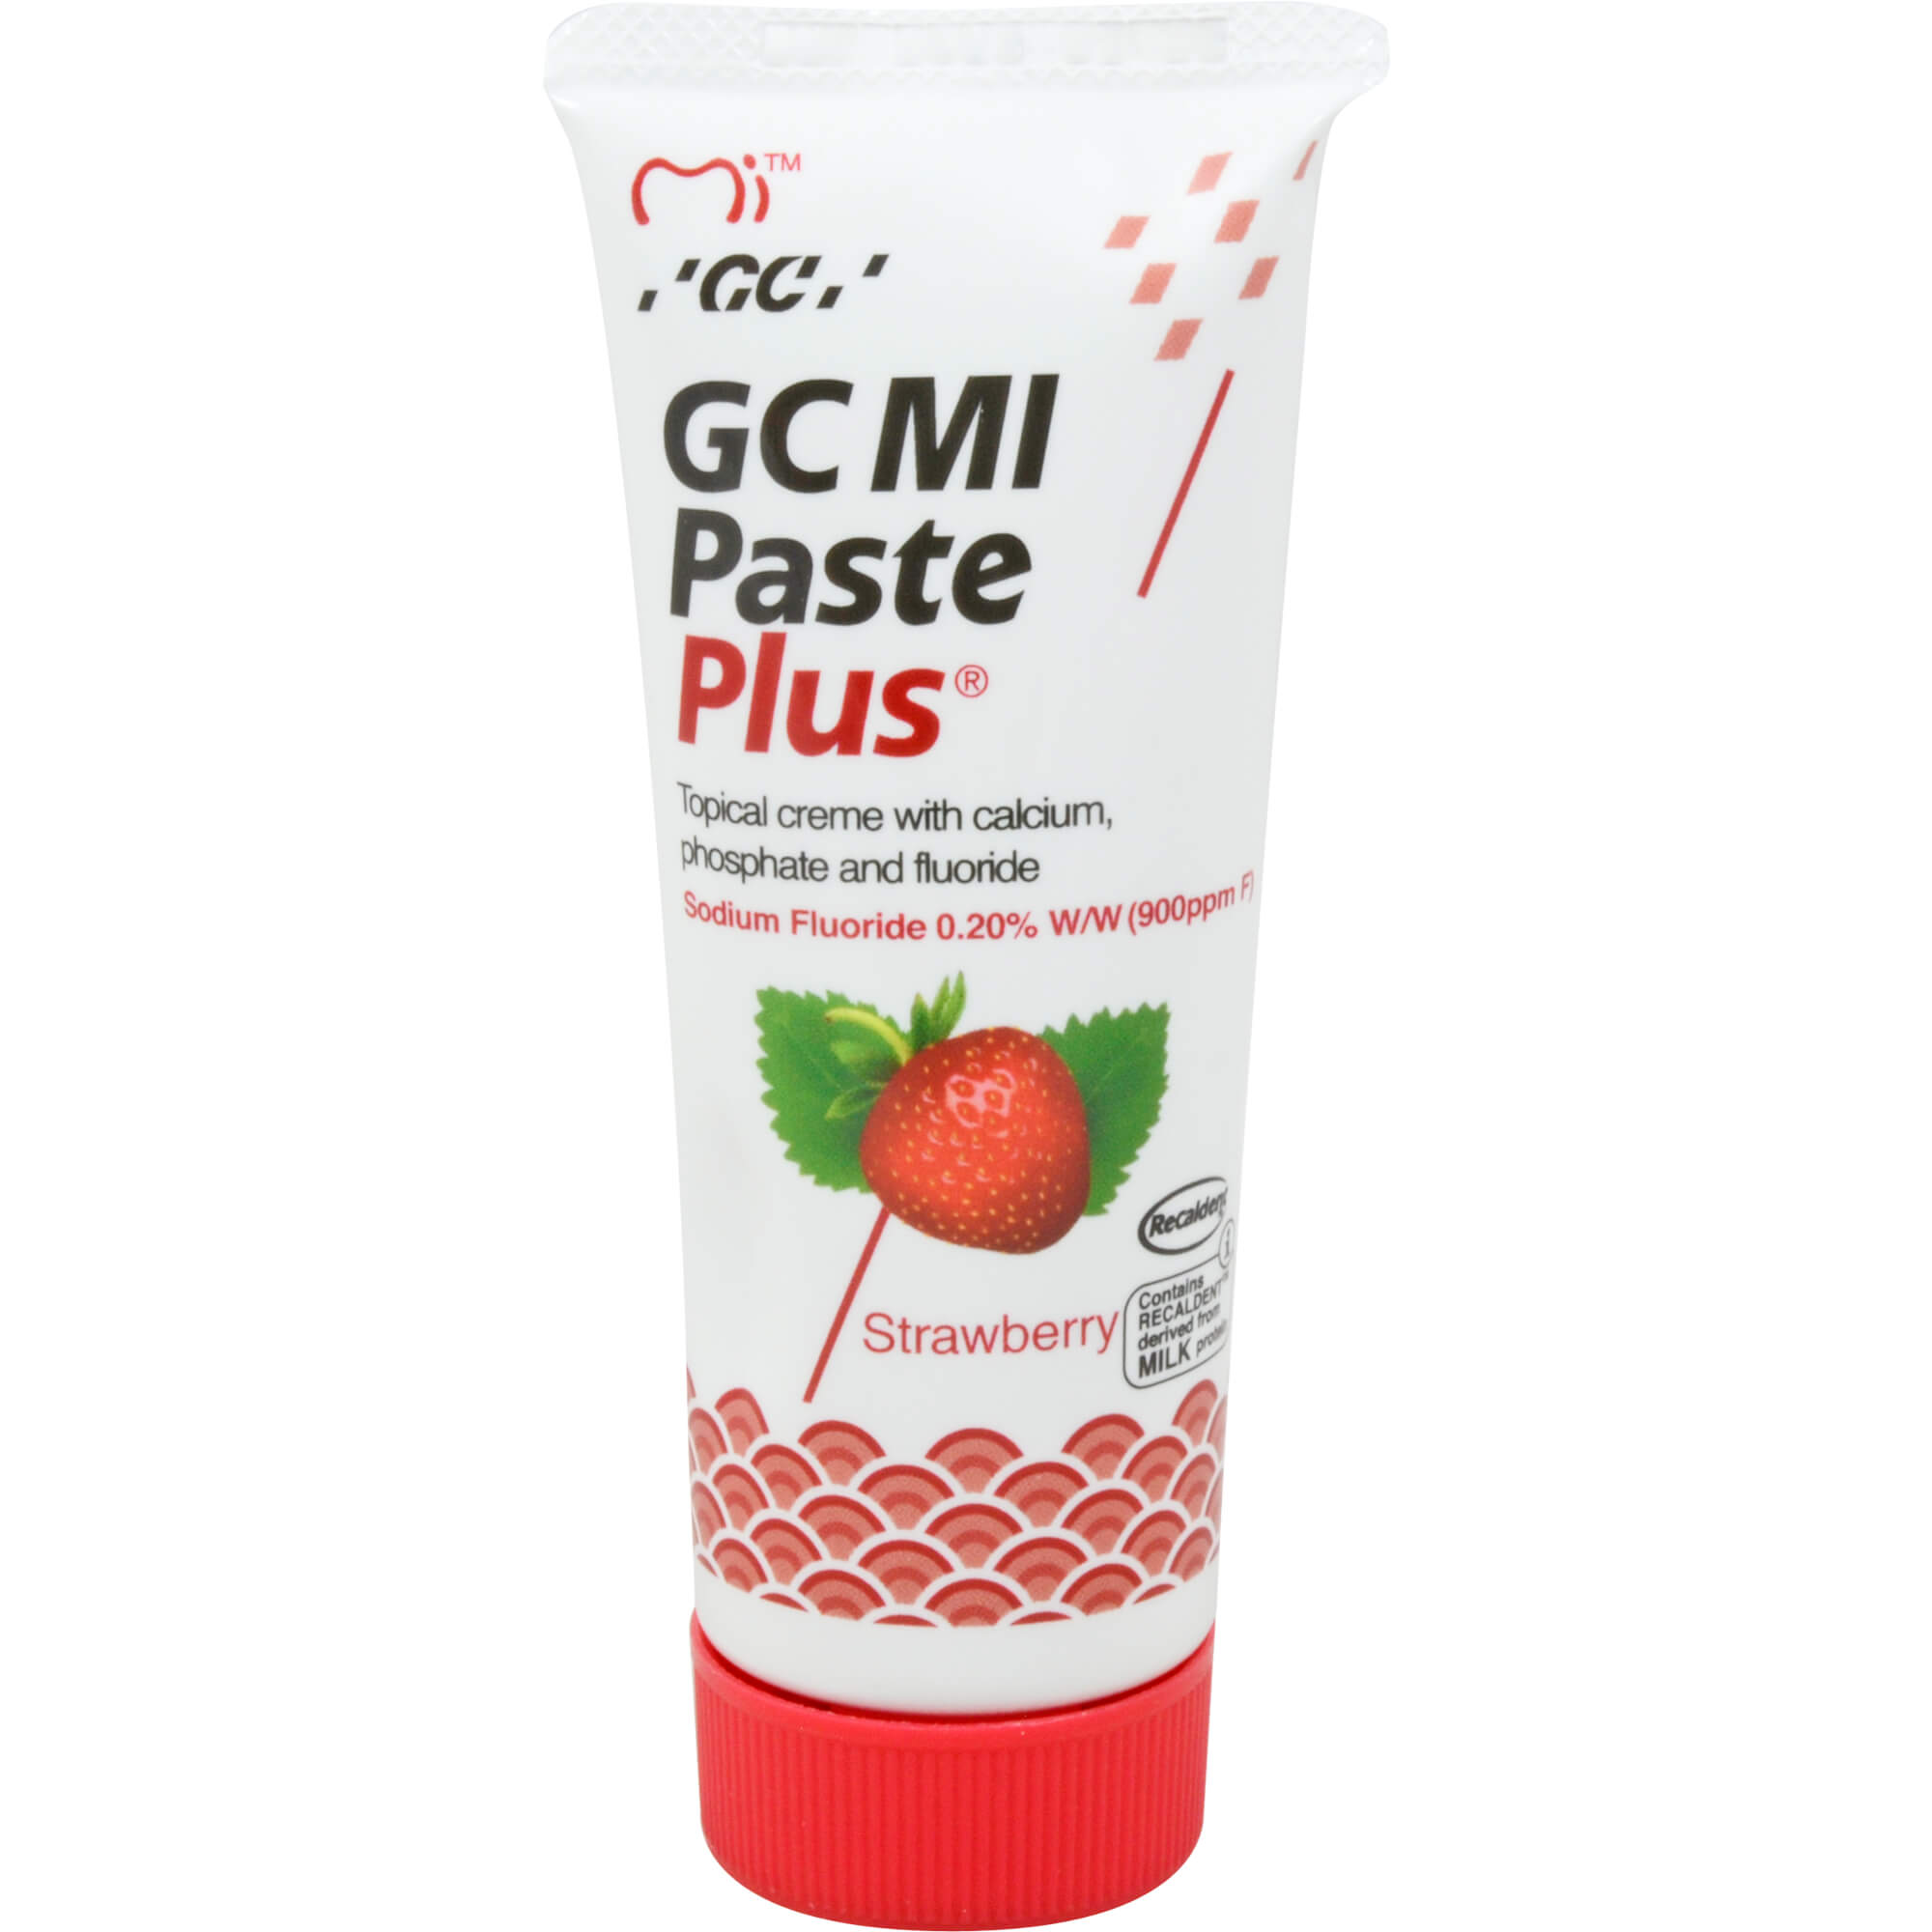 GCMI PASTE PLUS ERDBEERE